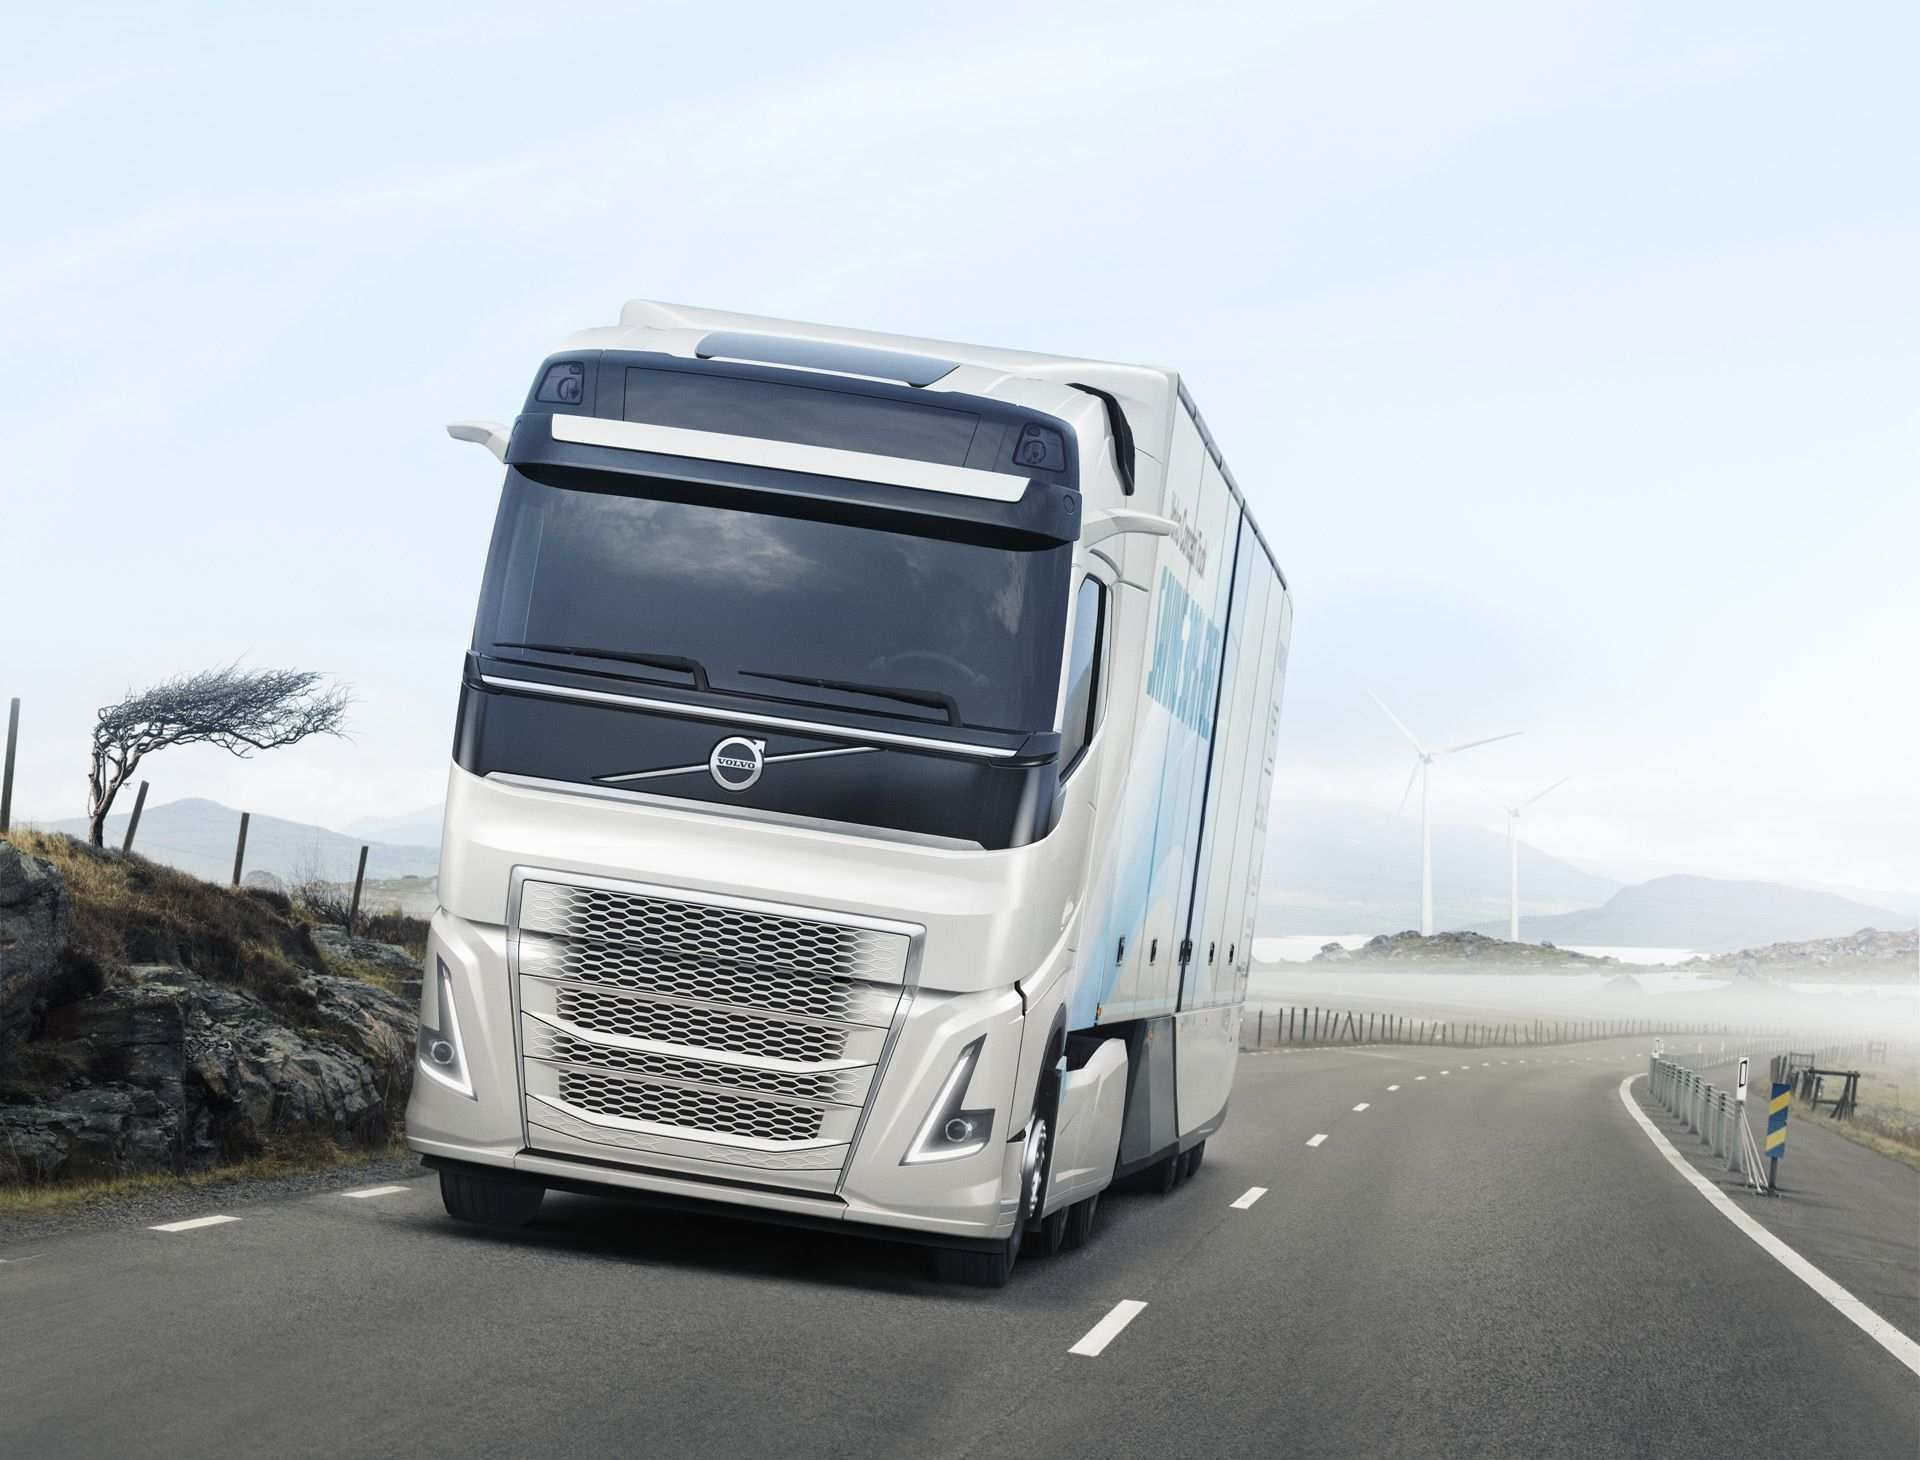 98 New Volvo Fh16 2019 Release Date for Volvo Fh16 2019